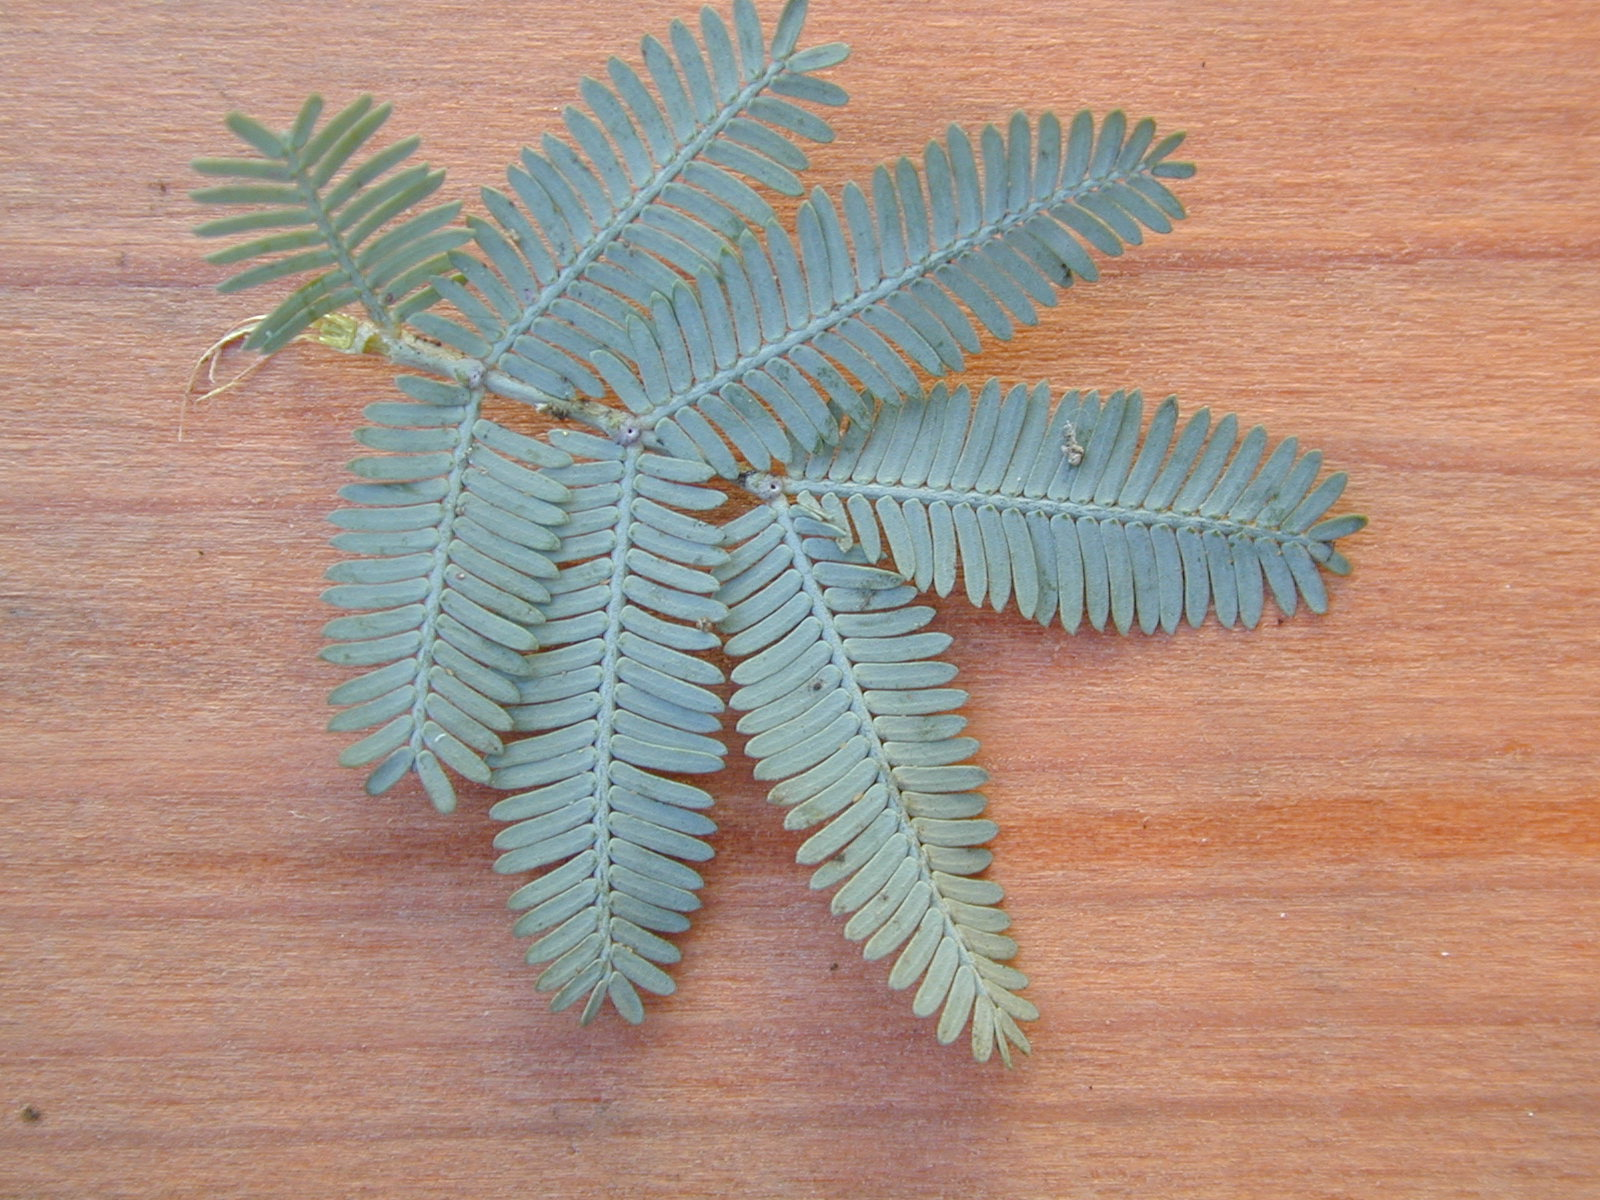 Acacia Baileyana Leaves